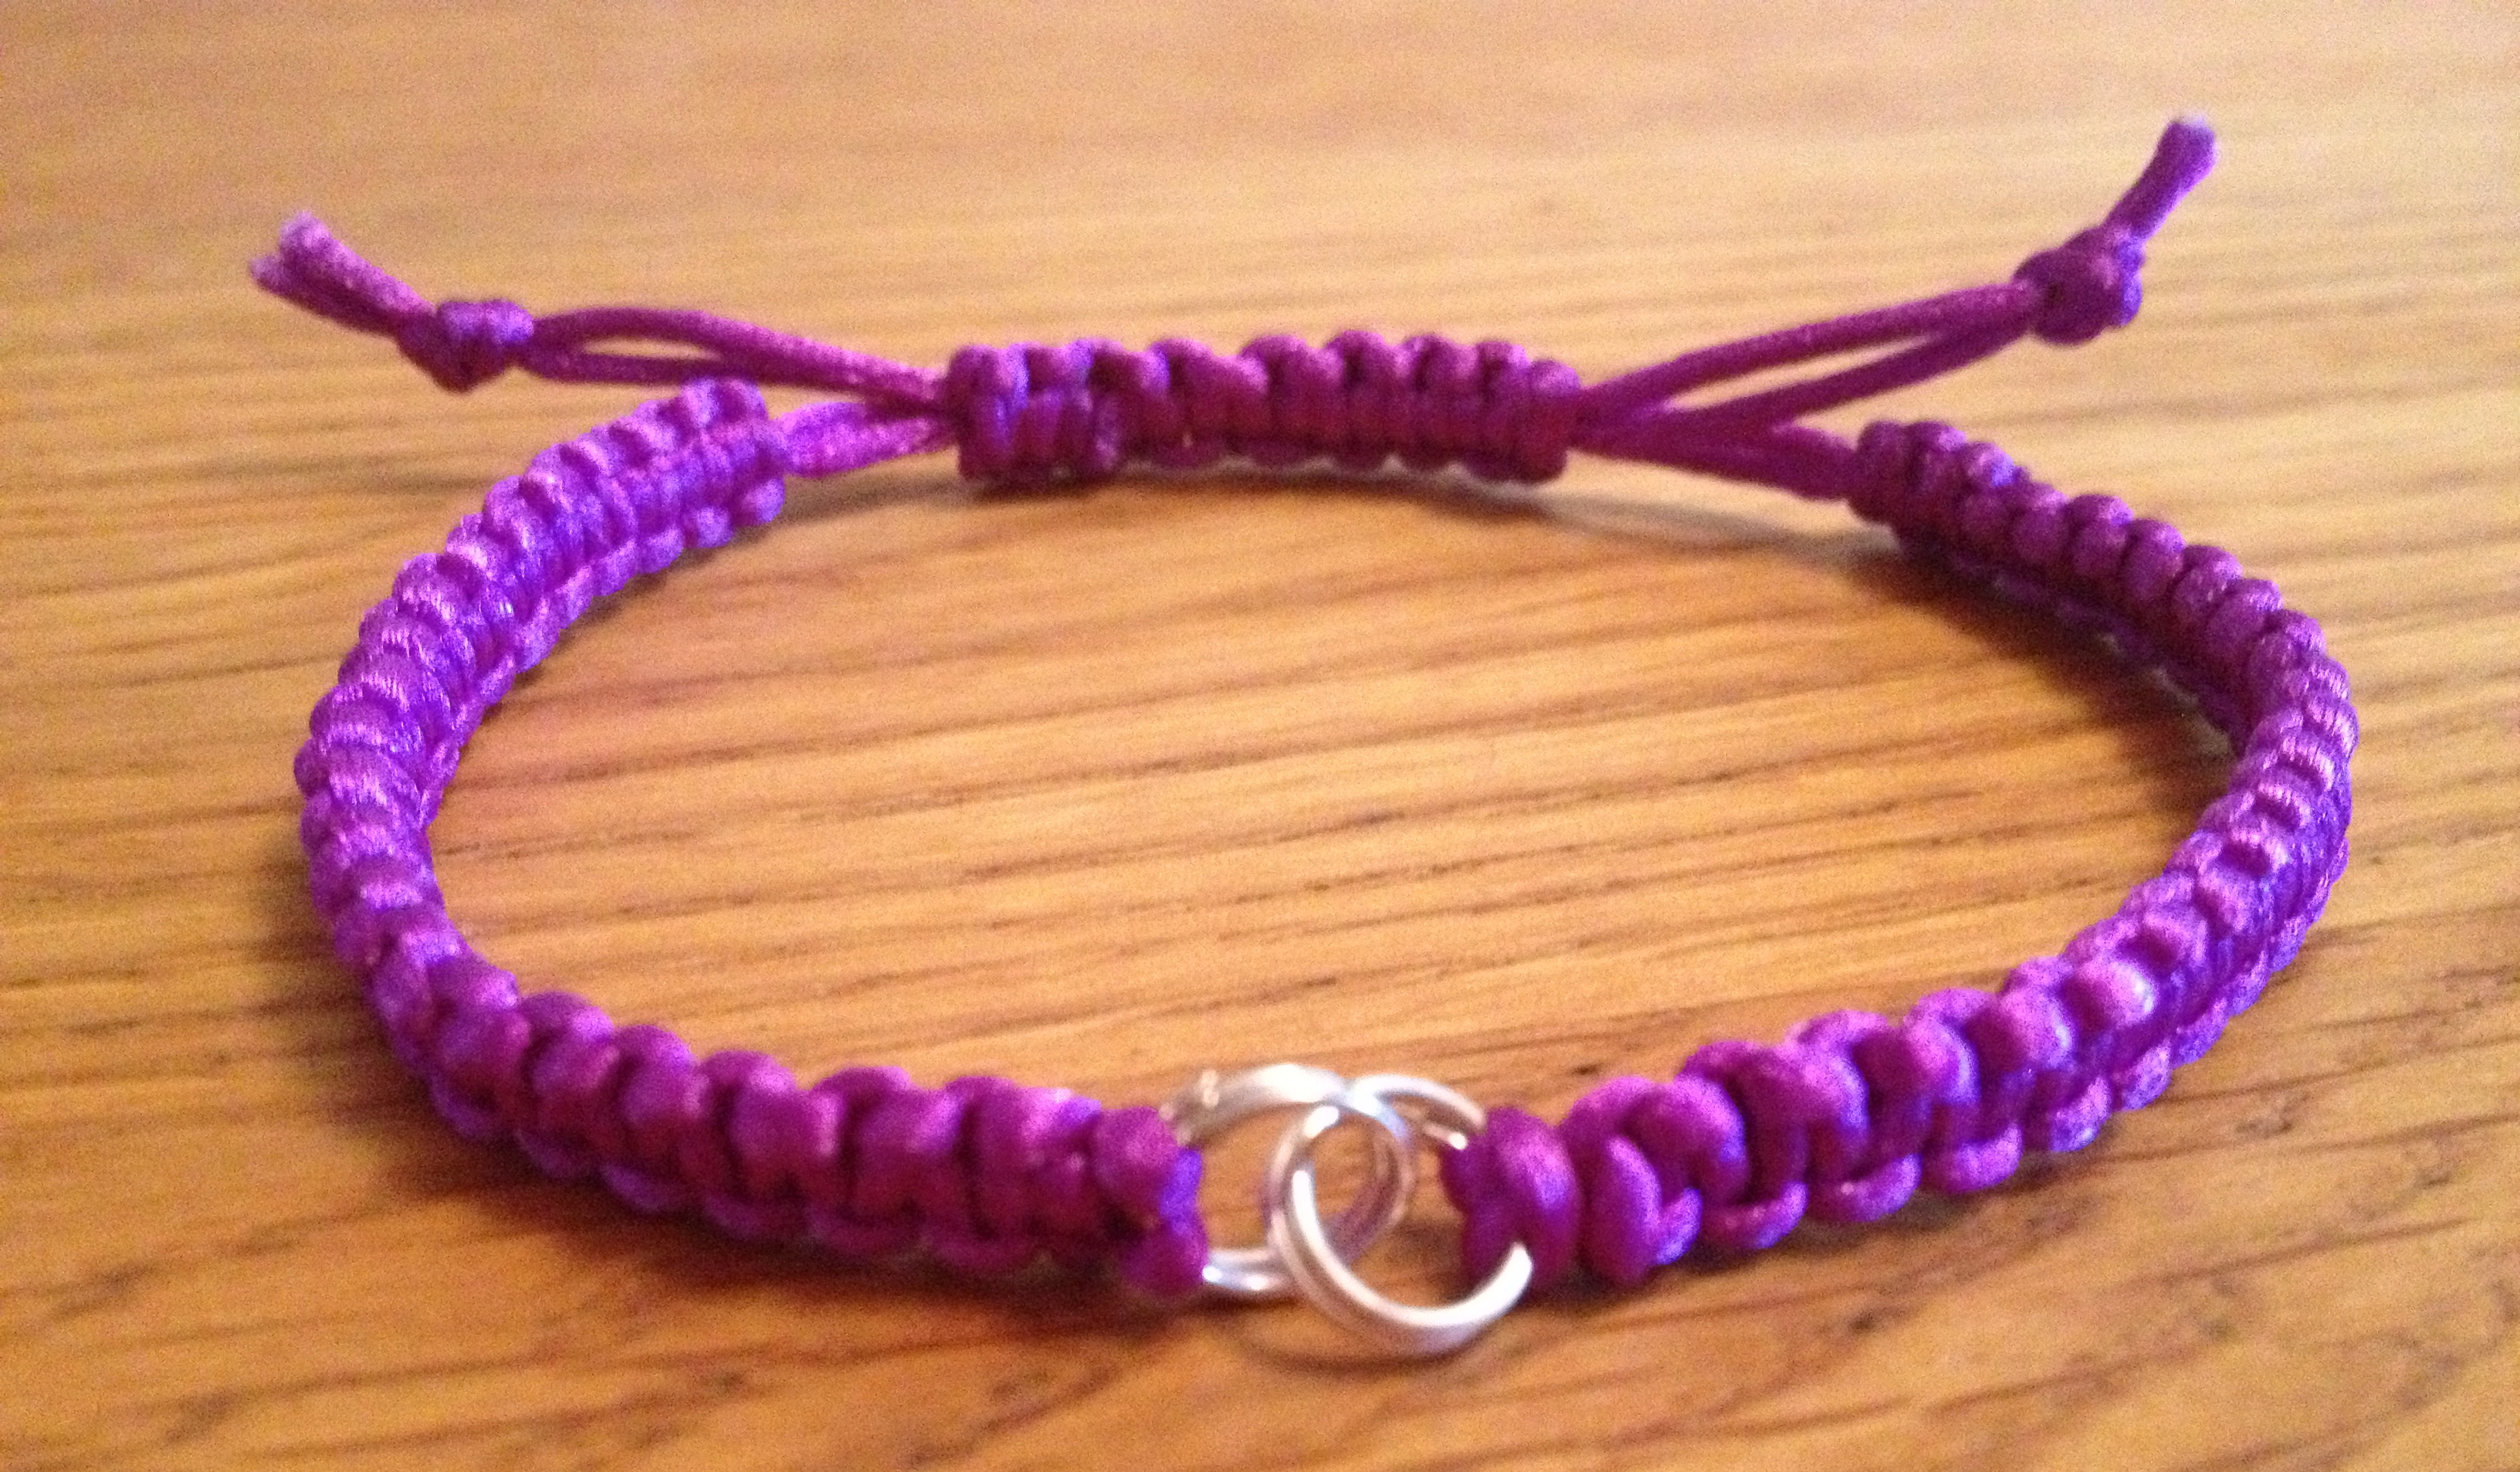 jewellery sizes homemade available handmade bracelet buy online picnic ronin p to in wales